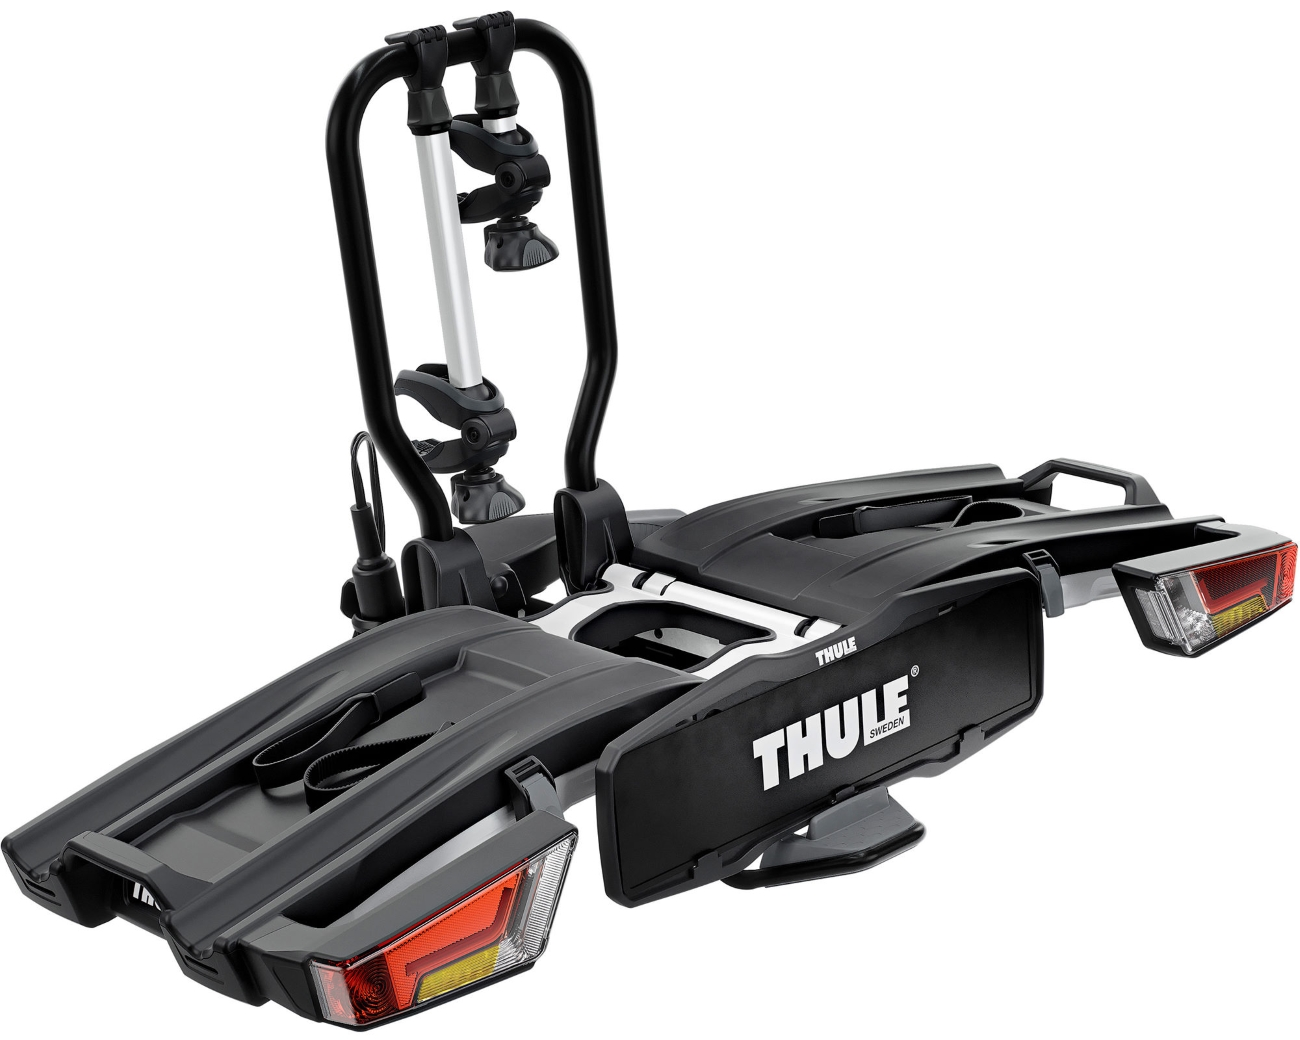 thule easyfold xt 2 933 folding e bike carrier for towbars. Black Bedroom Furniture Sets. Home Design Ideas